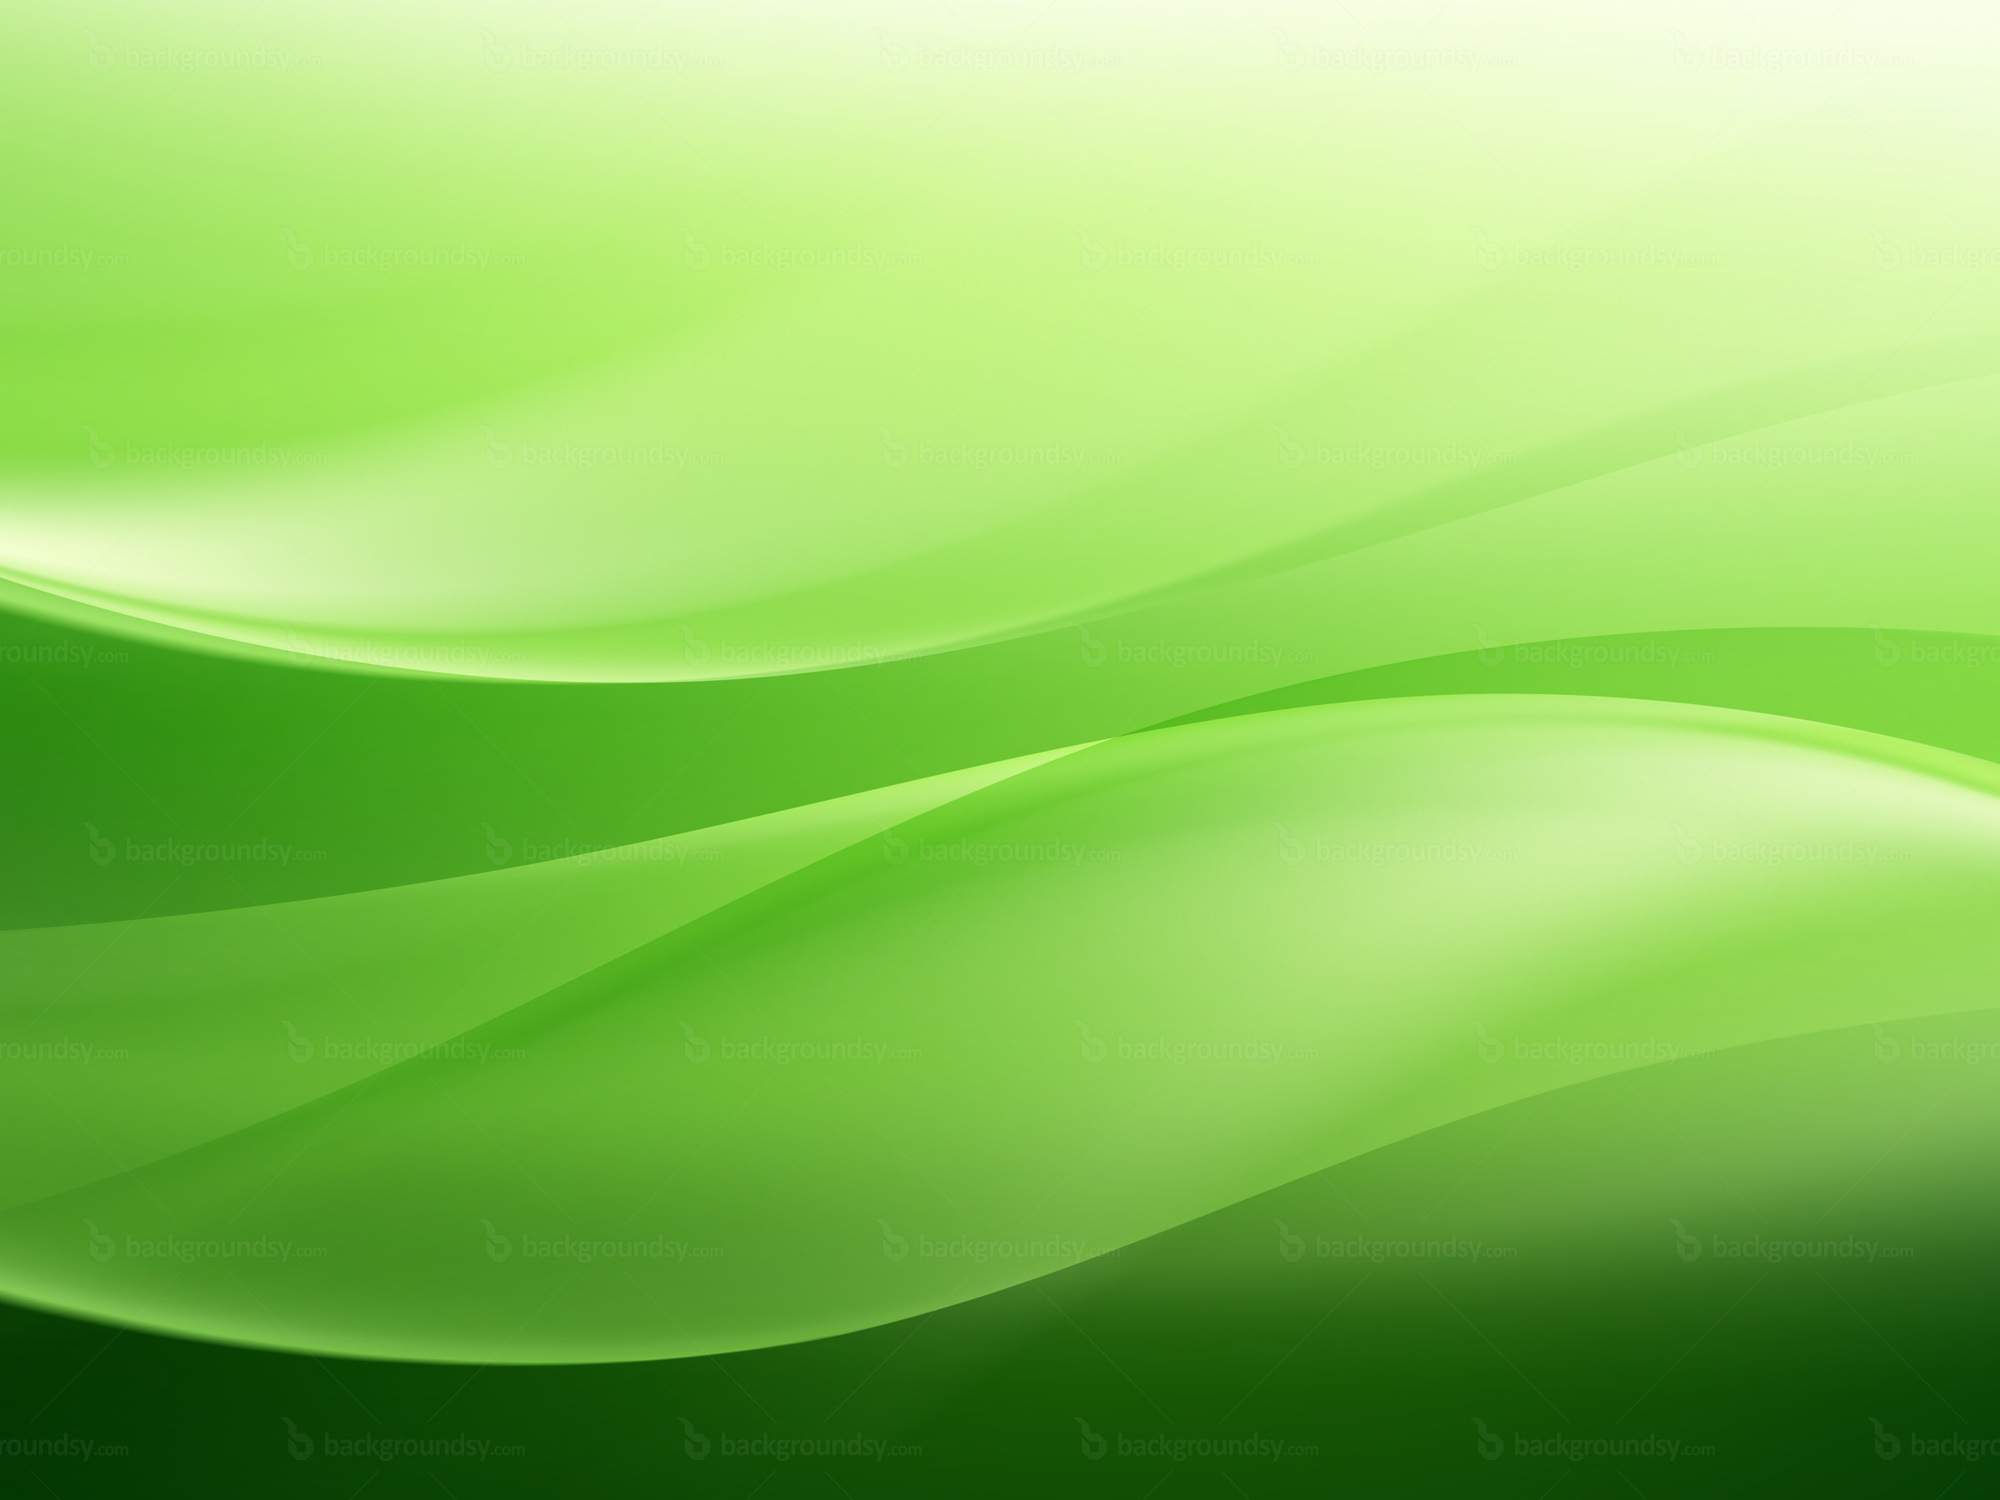 Green waves background for Green design